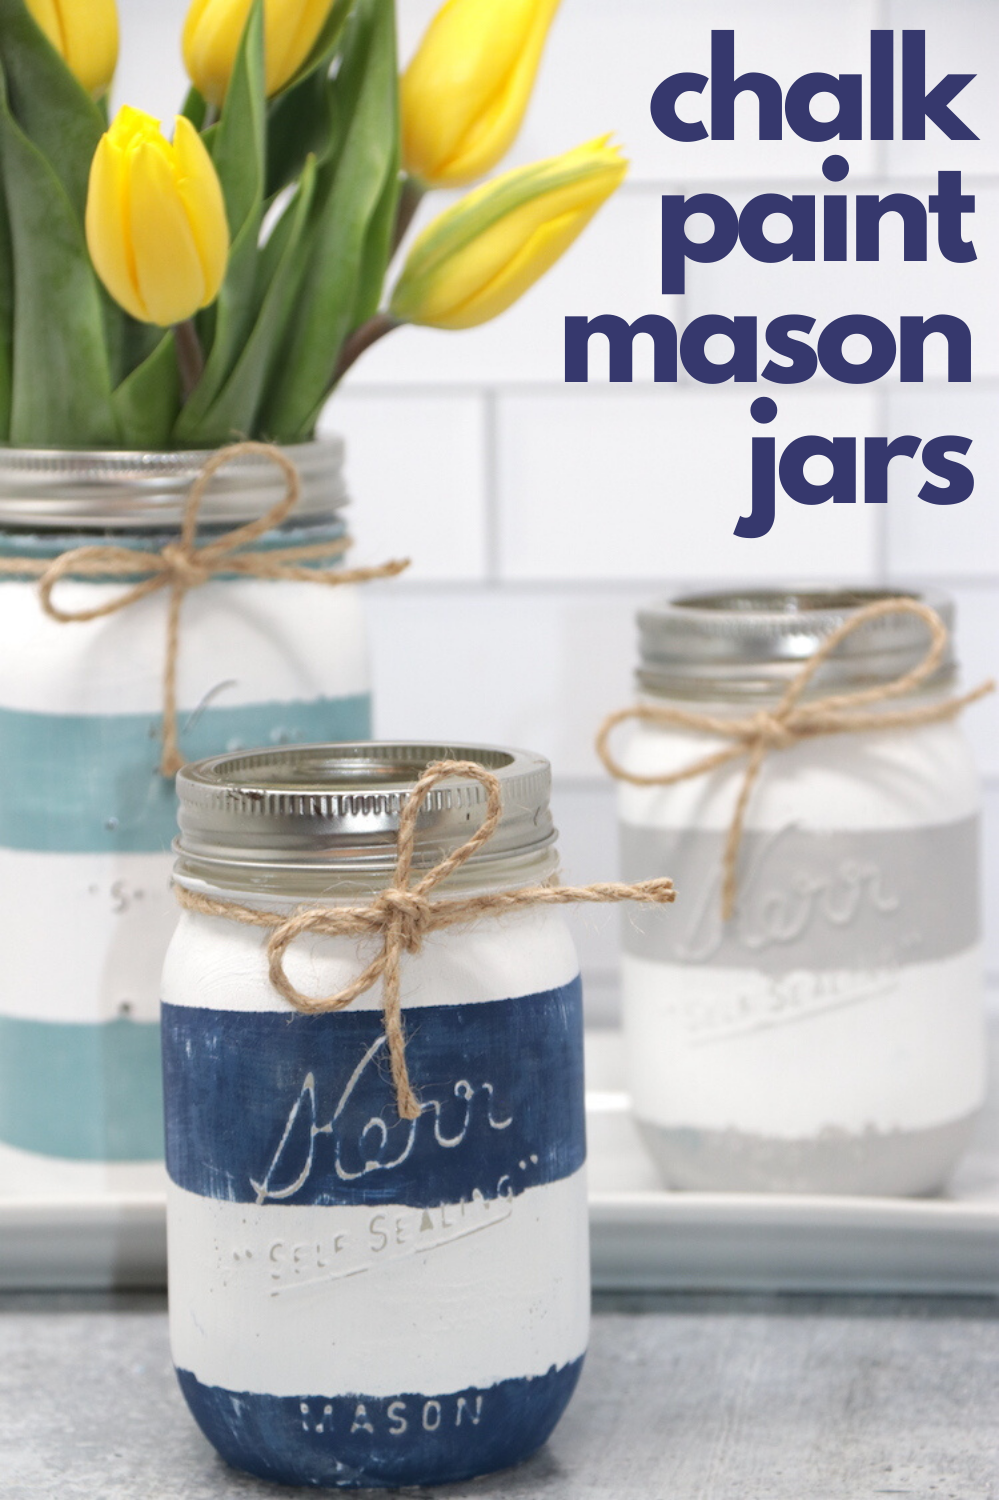 Chalk Paint Mason Jars - Thrifty and Thriving